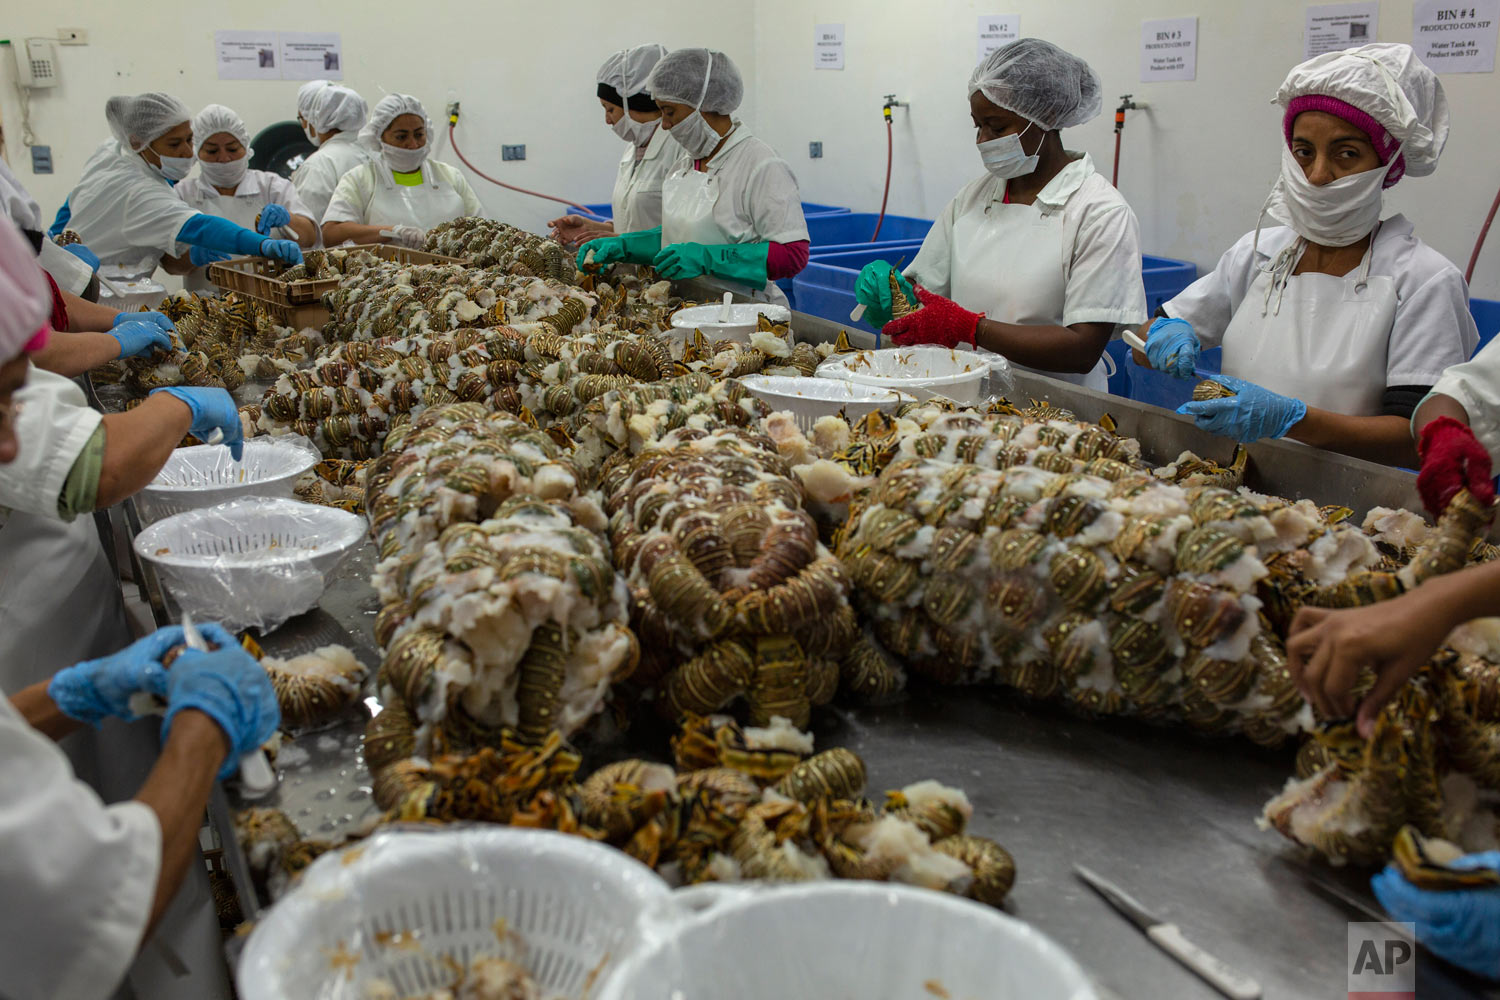 In this Jan. 27, 2018 photo, women work in the packaging of frozen lobsters to export to the US, in a factory in La Ceiba, Honduras. (AP Photo/Rodrigo Abd)